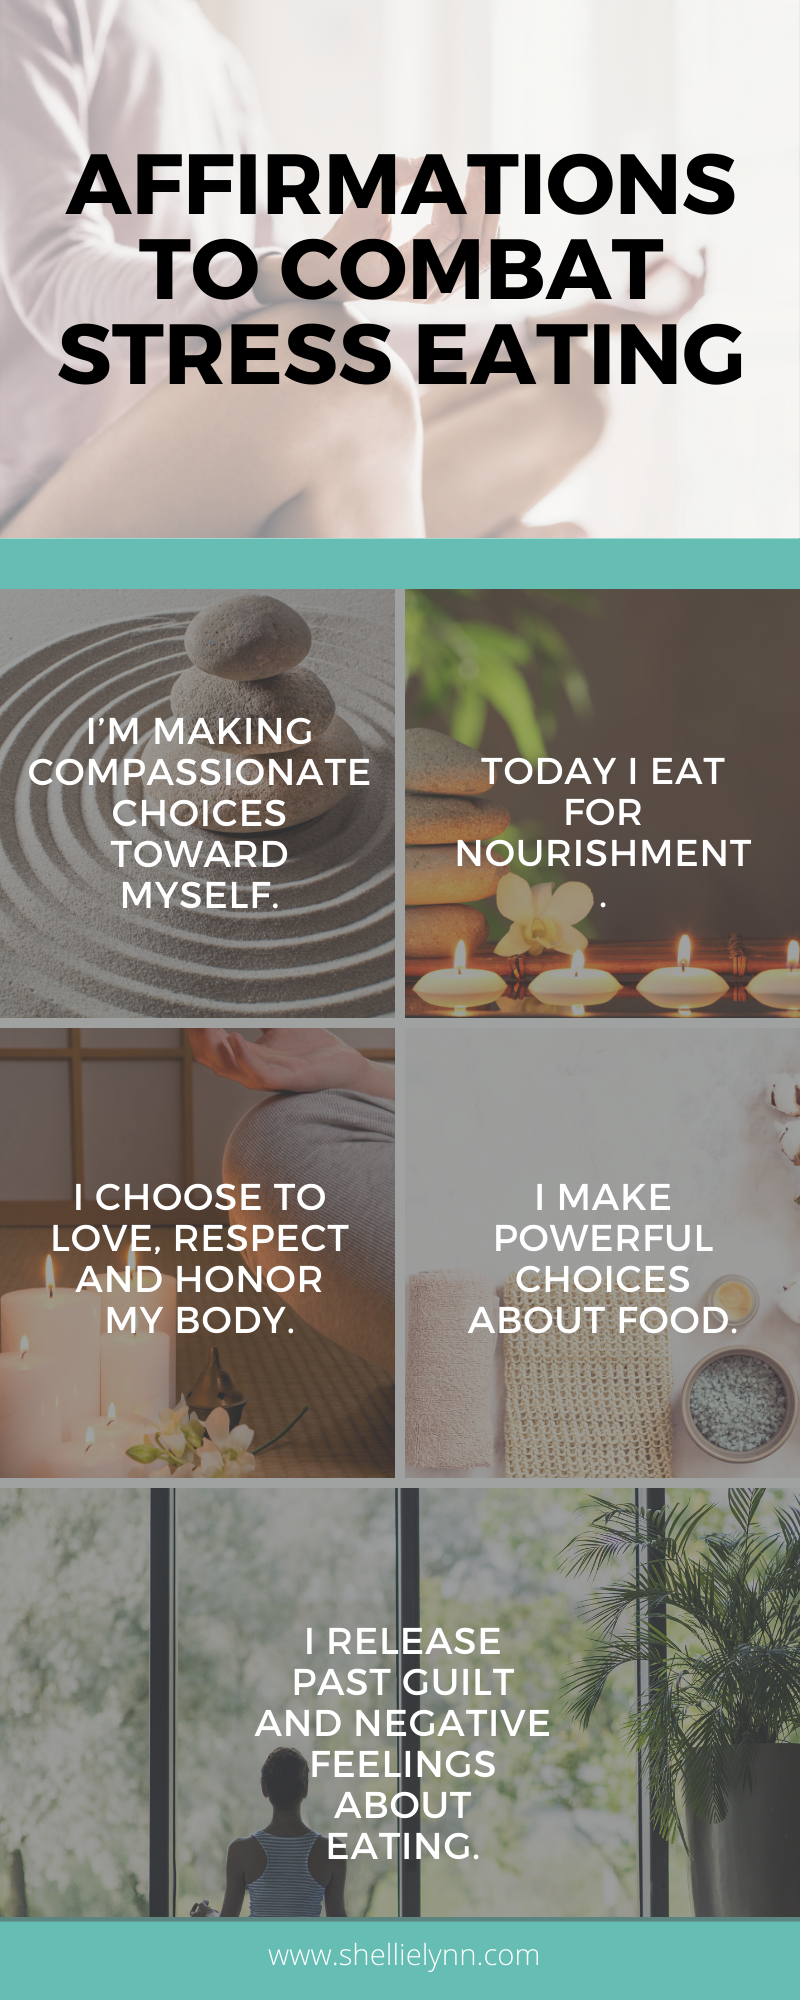 Affirmations to Combat Stress Eating